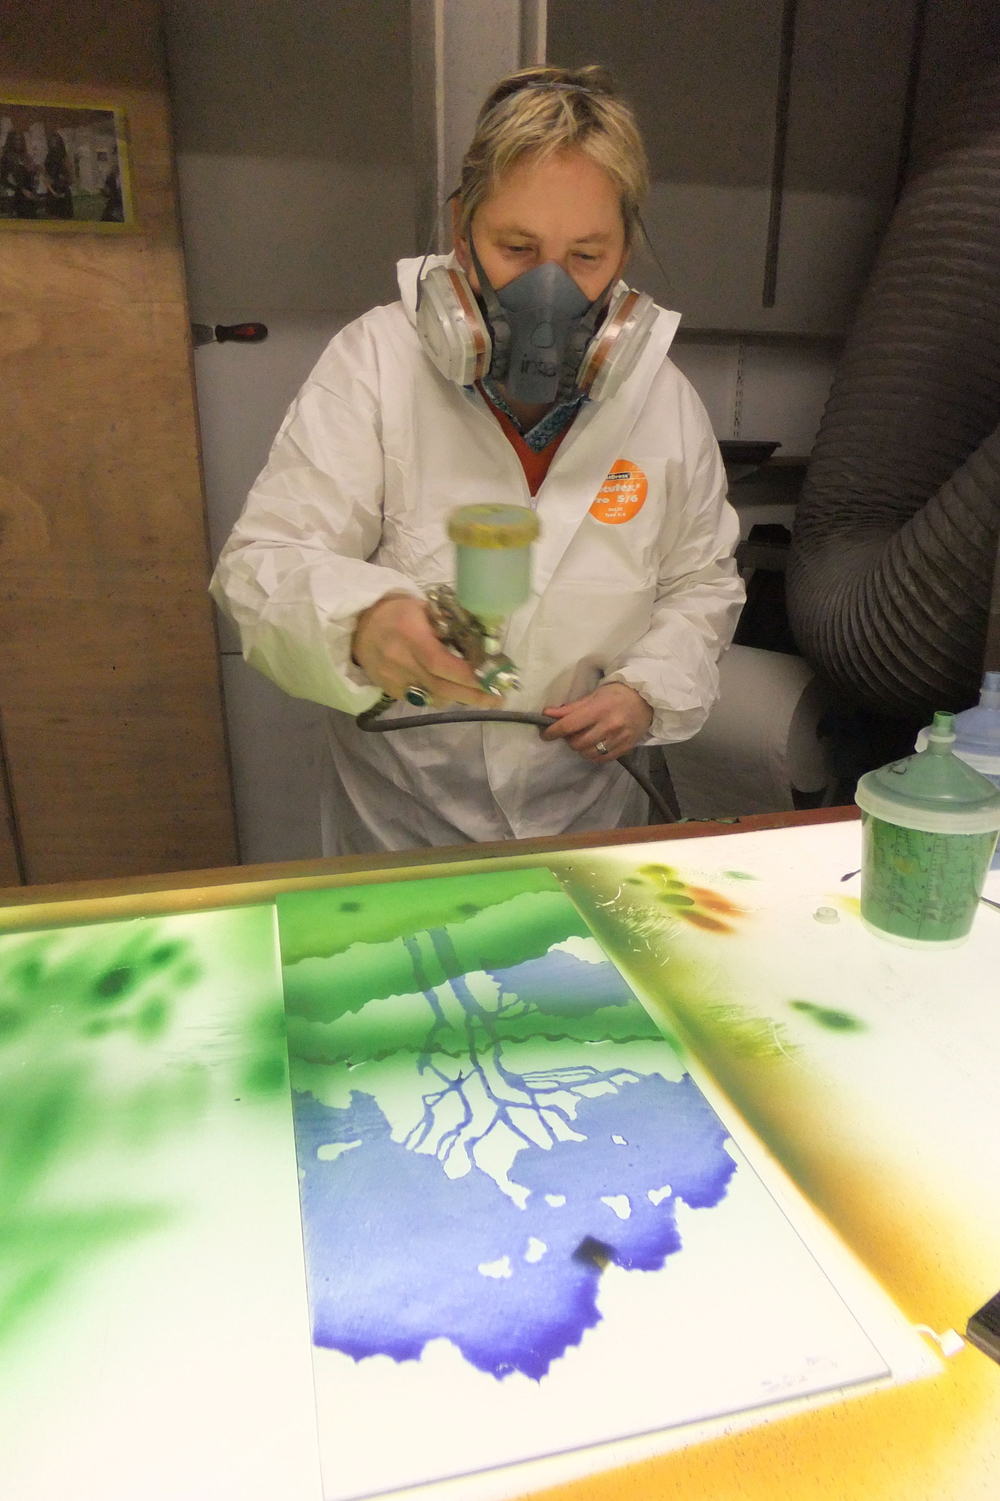 Air-brushing a sample